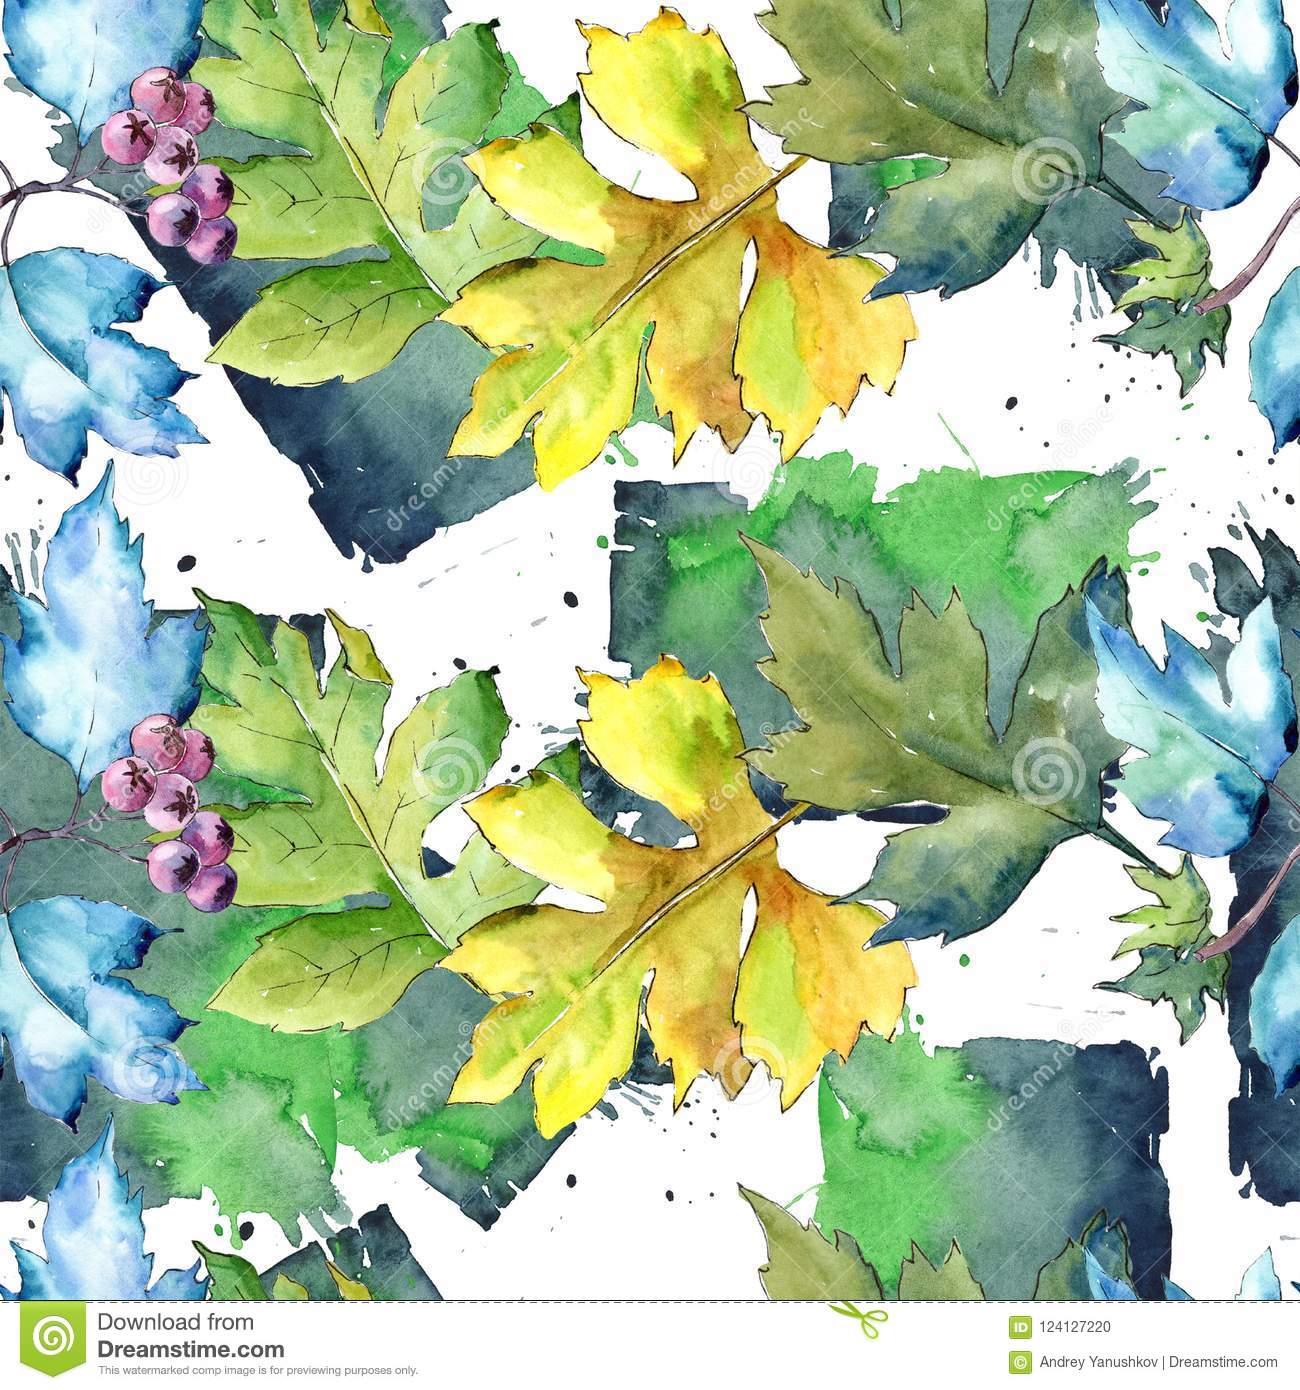 Watercolor Hawthorn Colorful Leaves Leaf Plant Botanical Garden Floral FoliageSeamless Background Pattern Fabric Wallpaper Print Texture